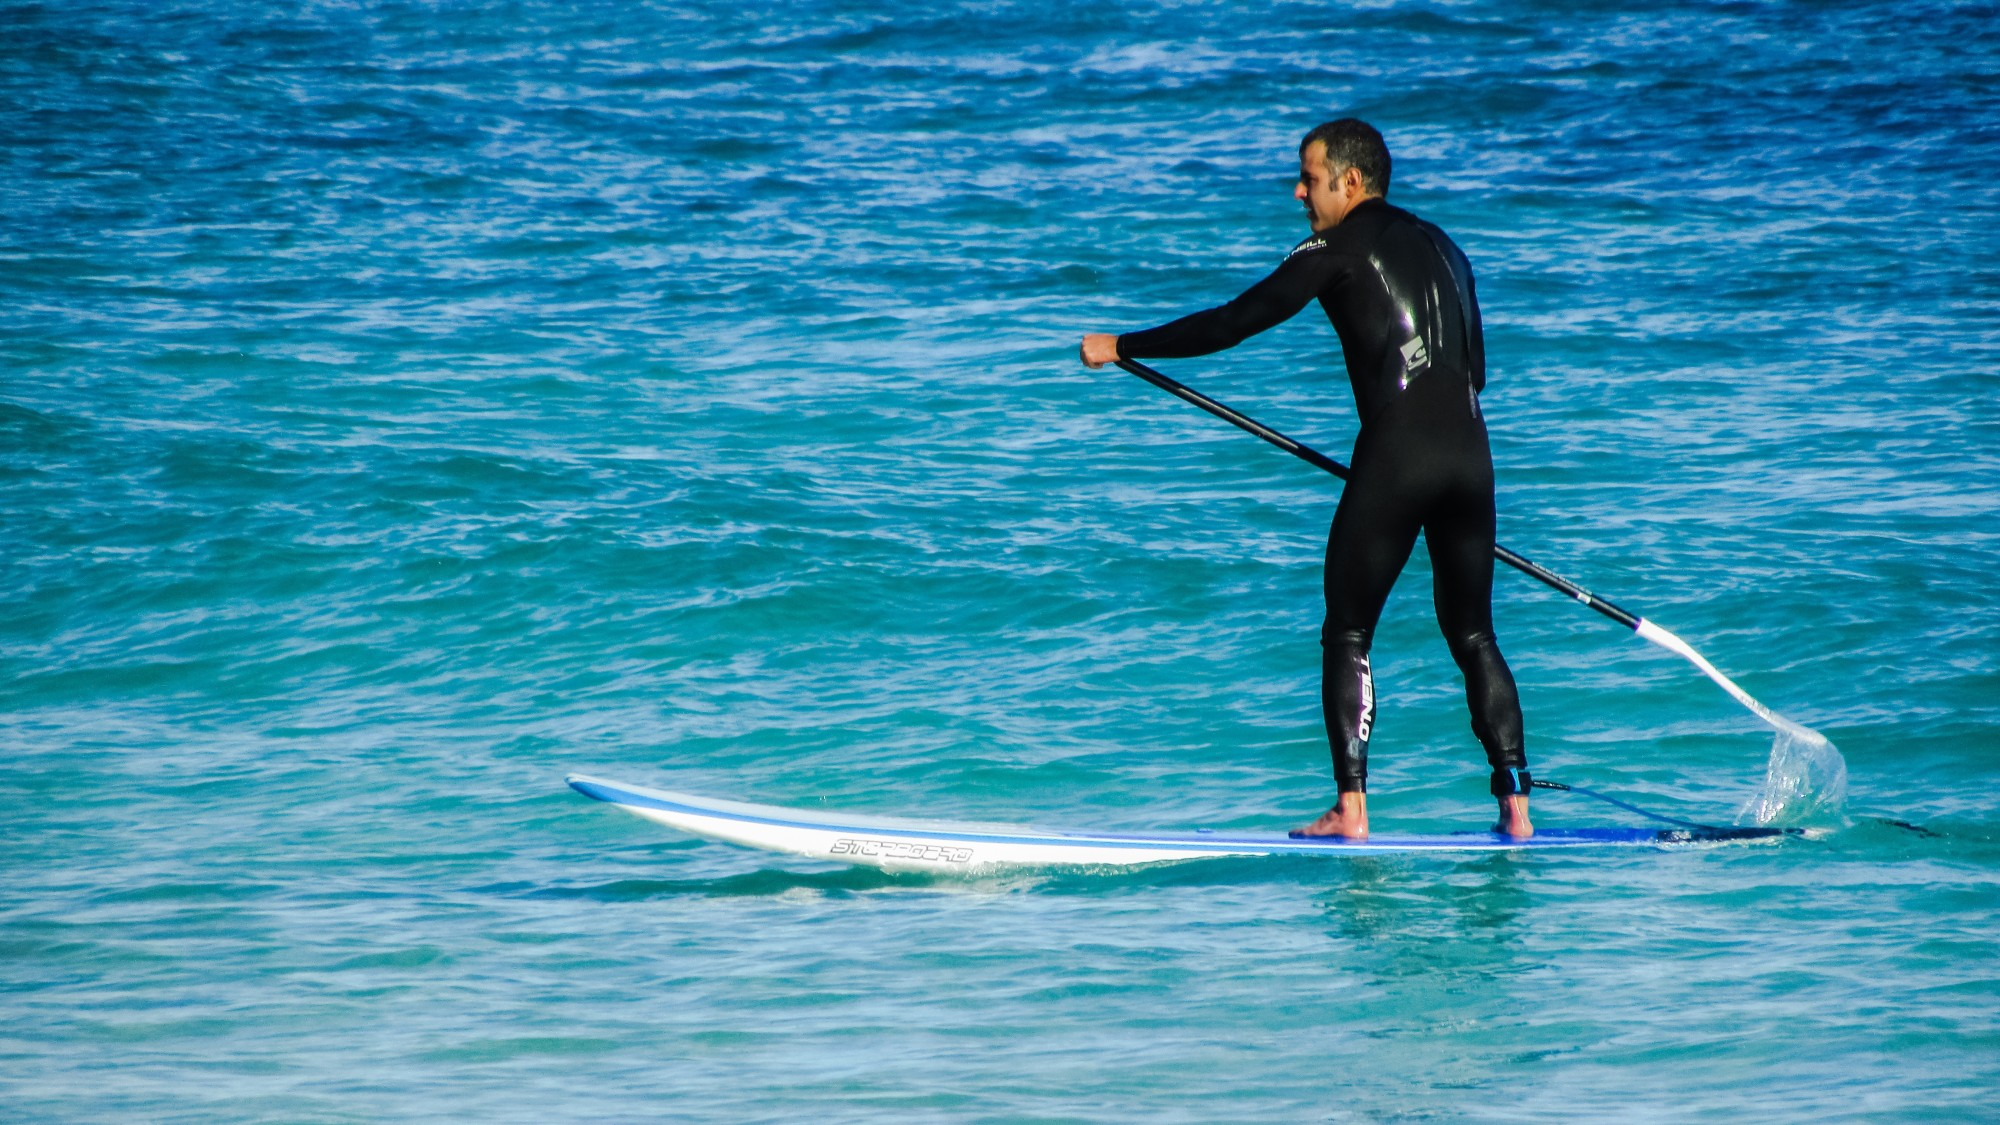 Paddling for Your Health: The Top Benefits of Stand Up Paddle Boarding